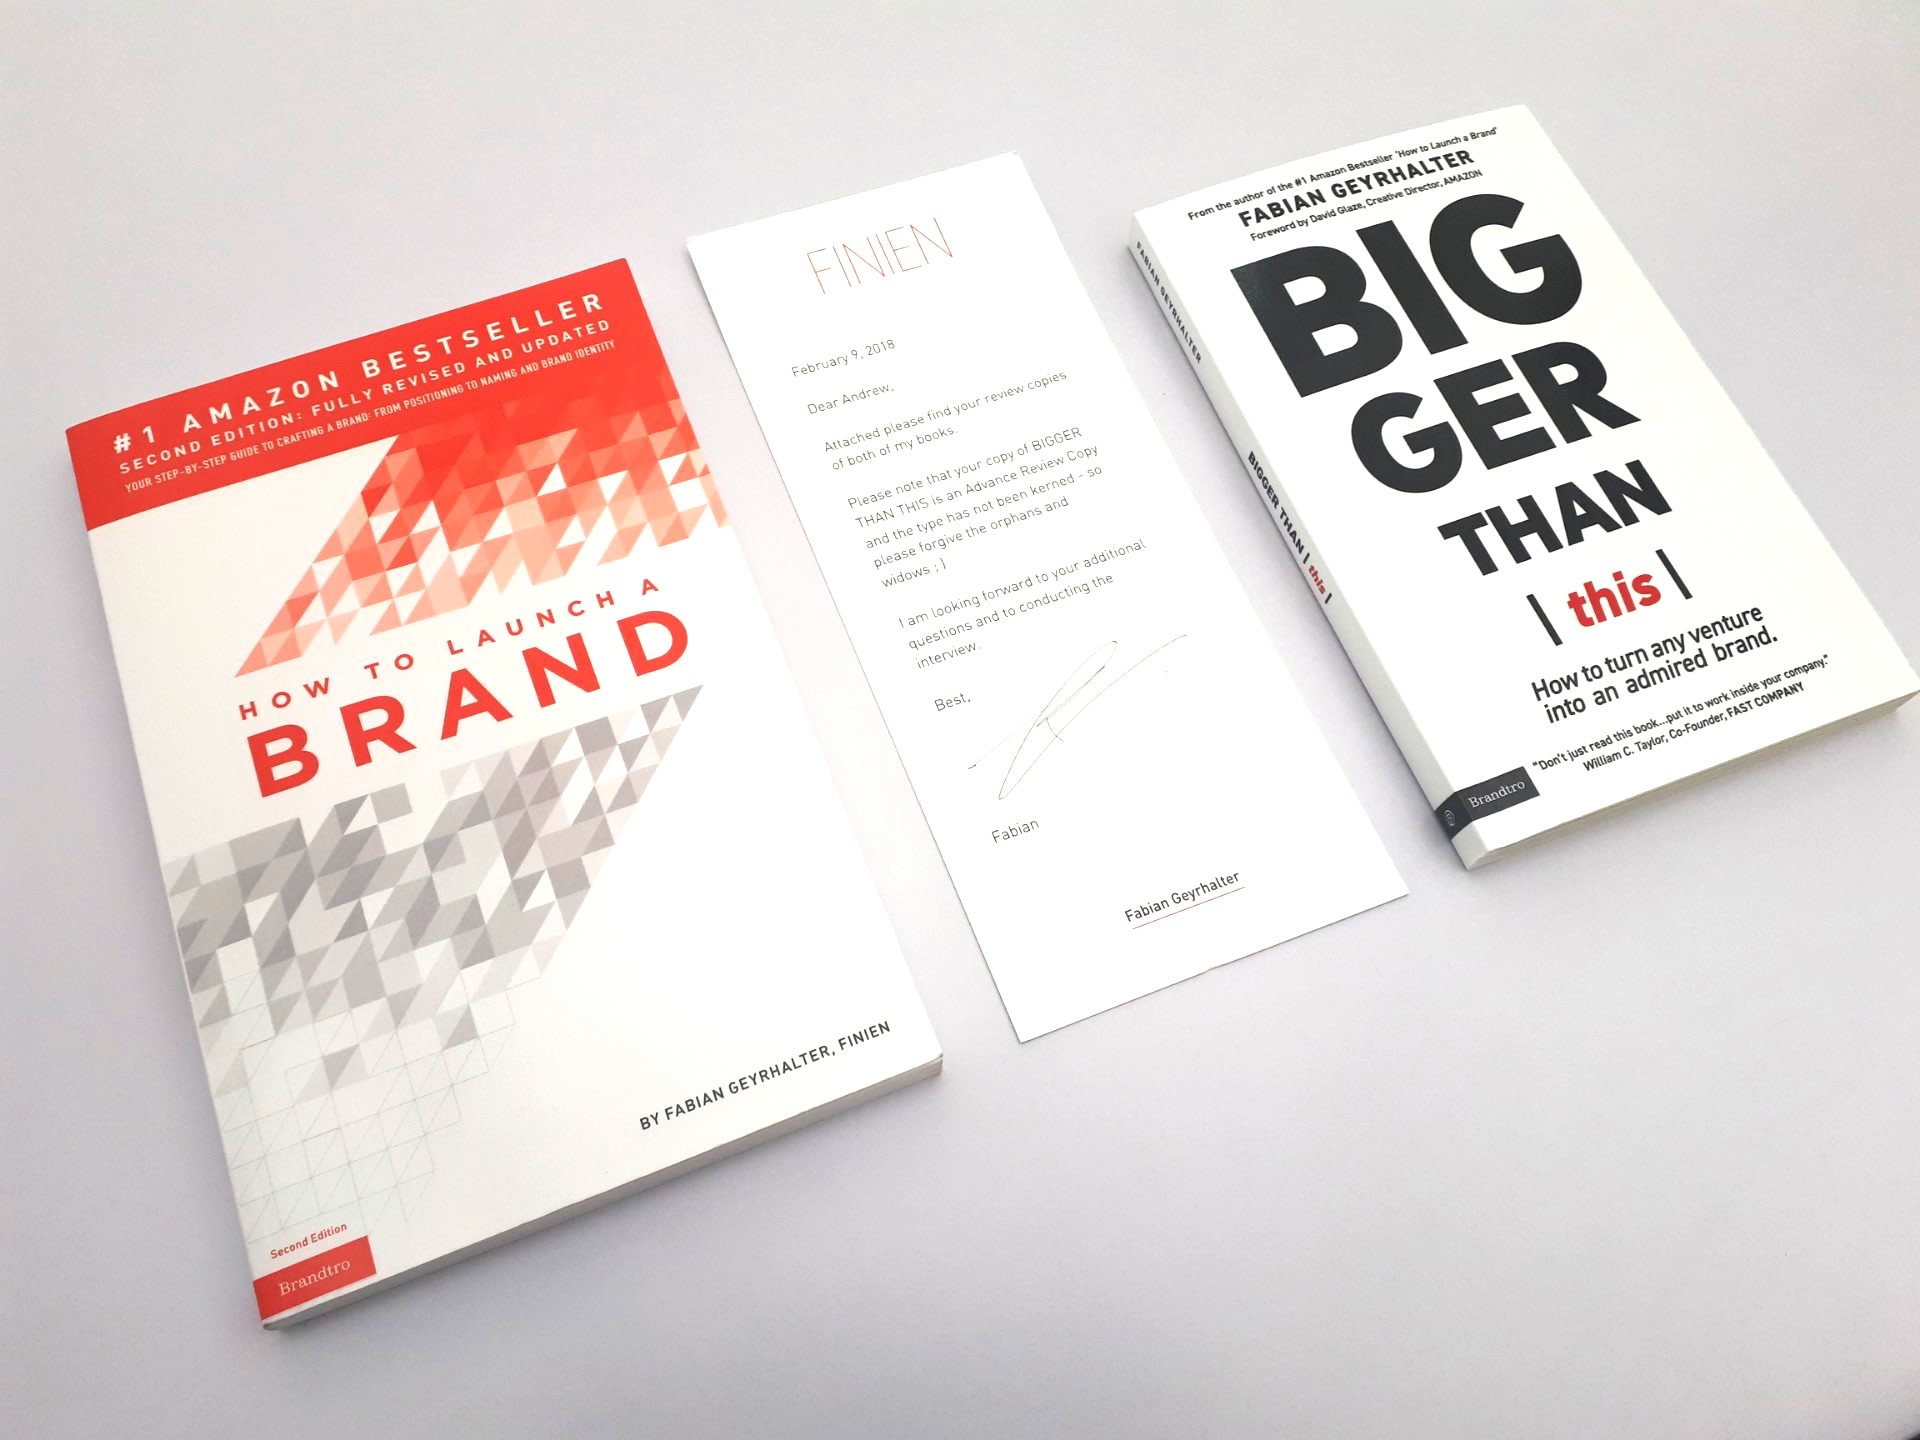 Bigger Than This: How to Turn Any Venture Into an Admired Brand by Fabian GeyrhalterBigger Than This: How to Turn Any Venture Into an Admired Brand by Fabian Geyrhalter